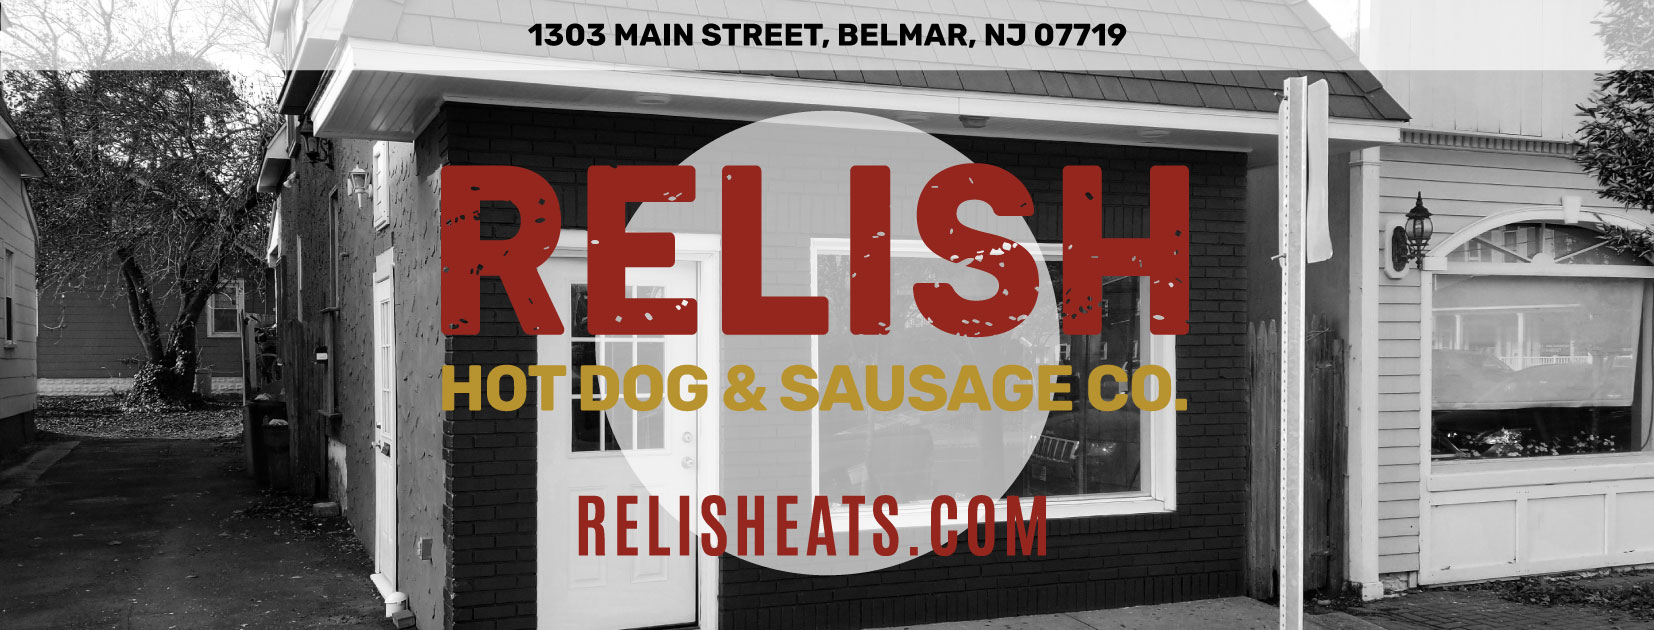 Relish Hot Dog & Sausage Co.